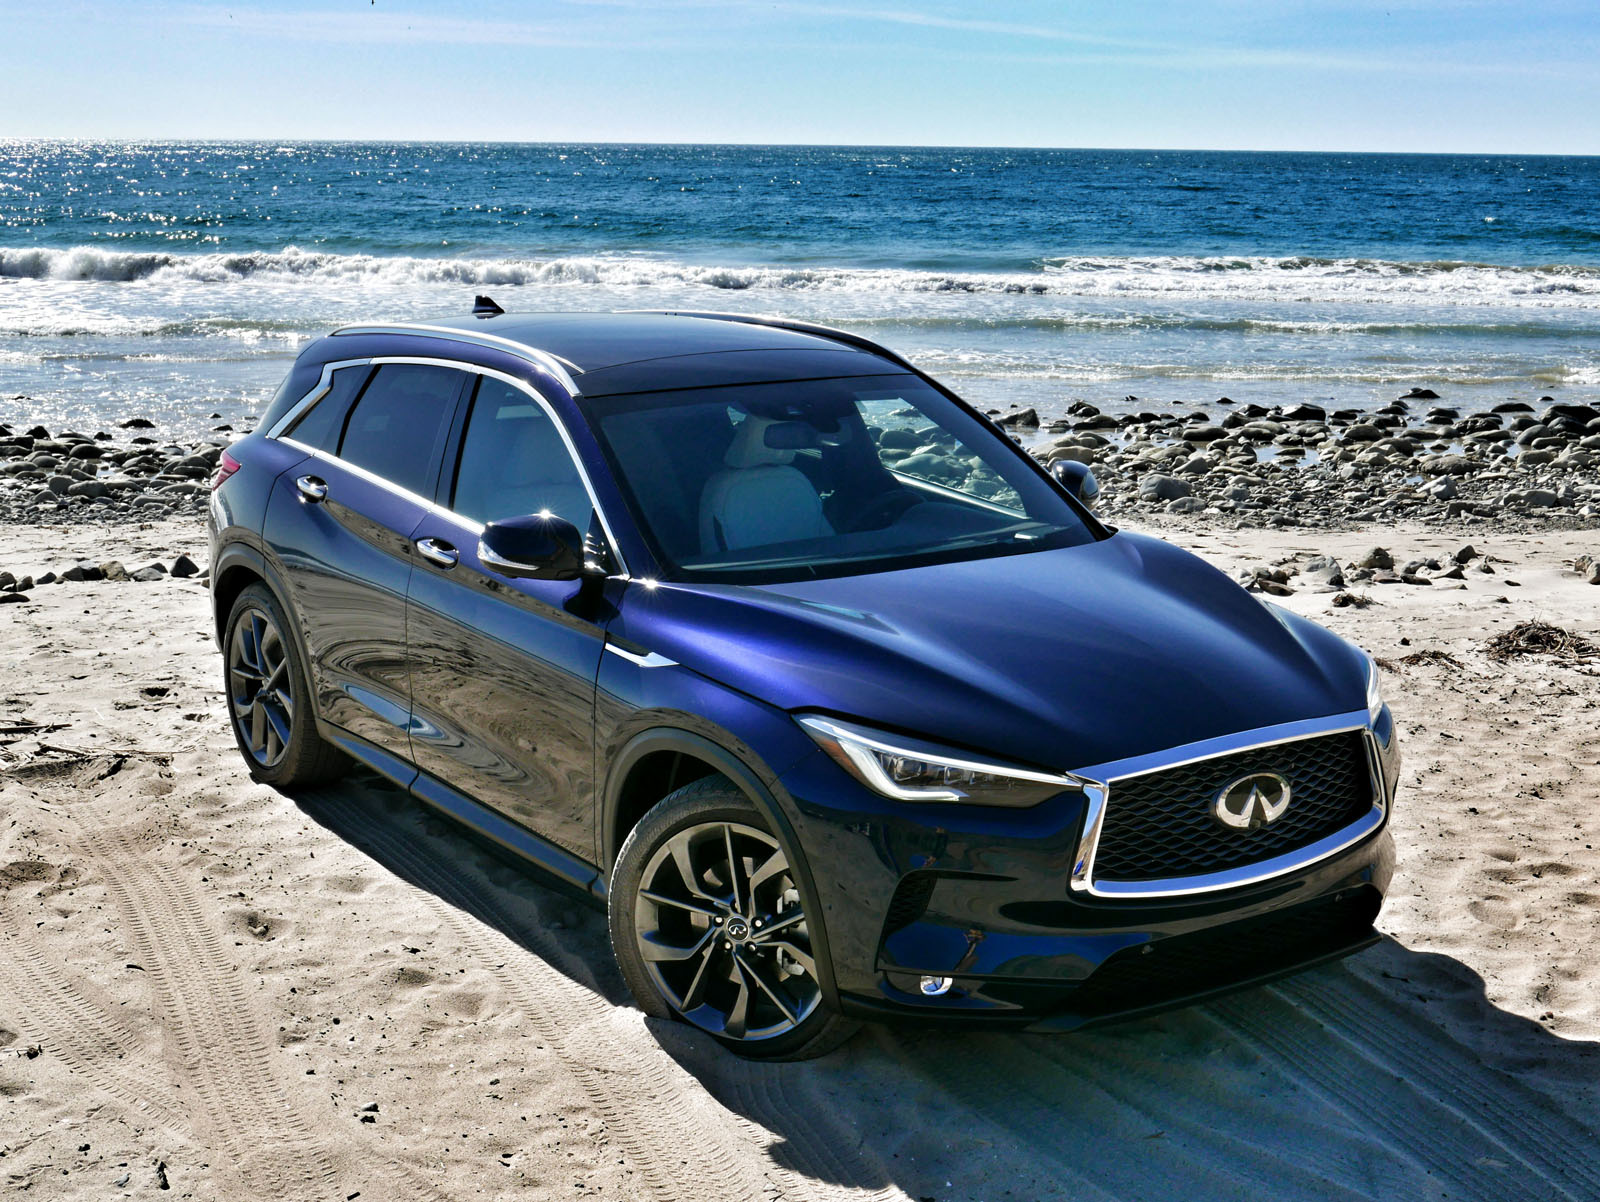 2019-Infiniti-QX50-Review-Ben-Hunting-17.jpg